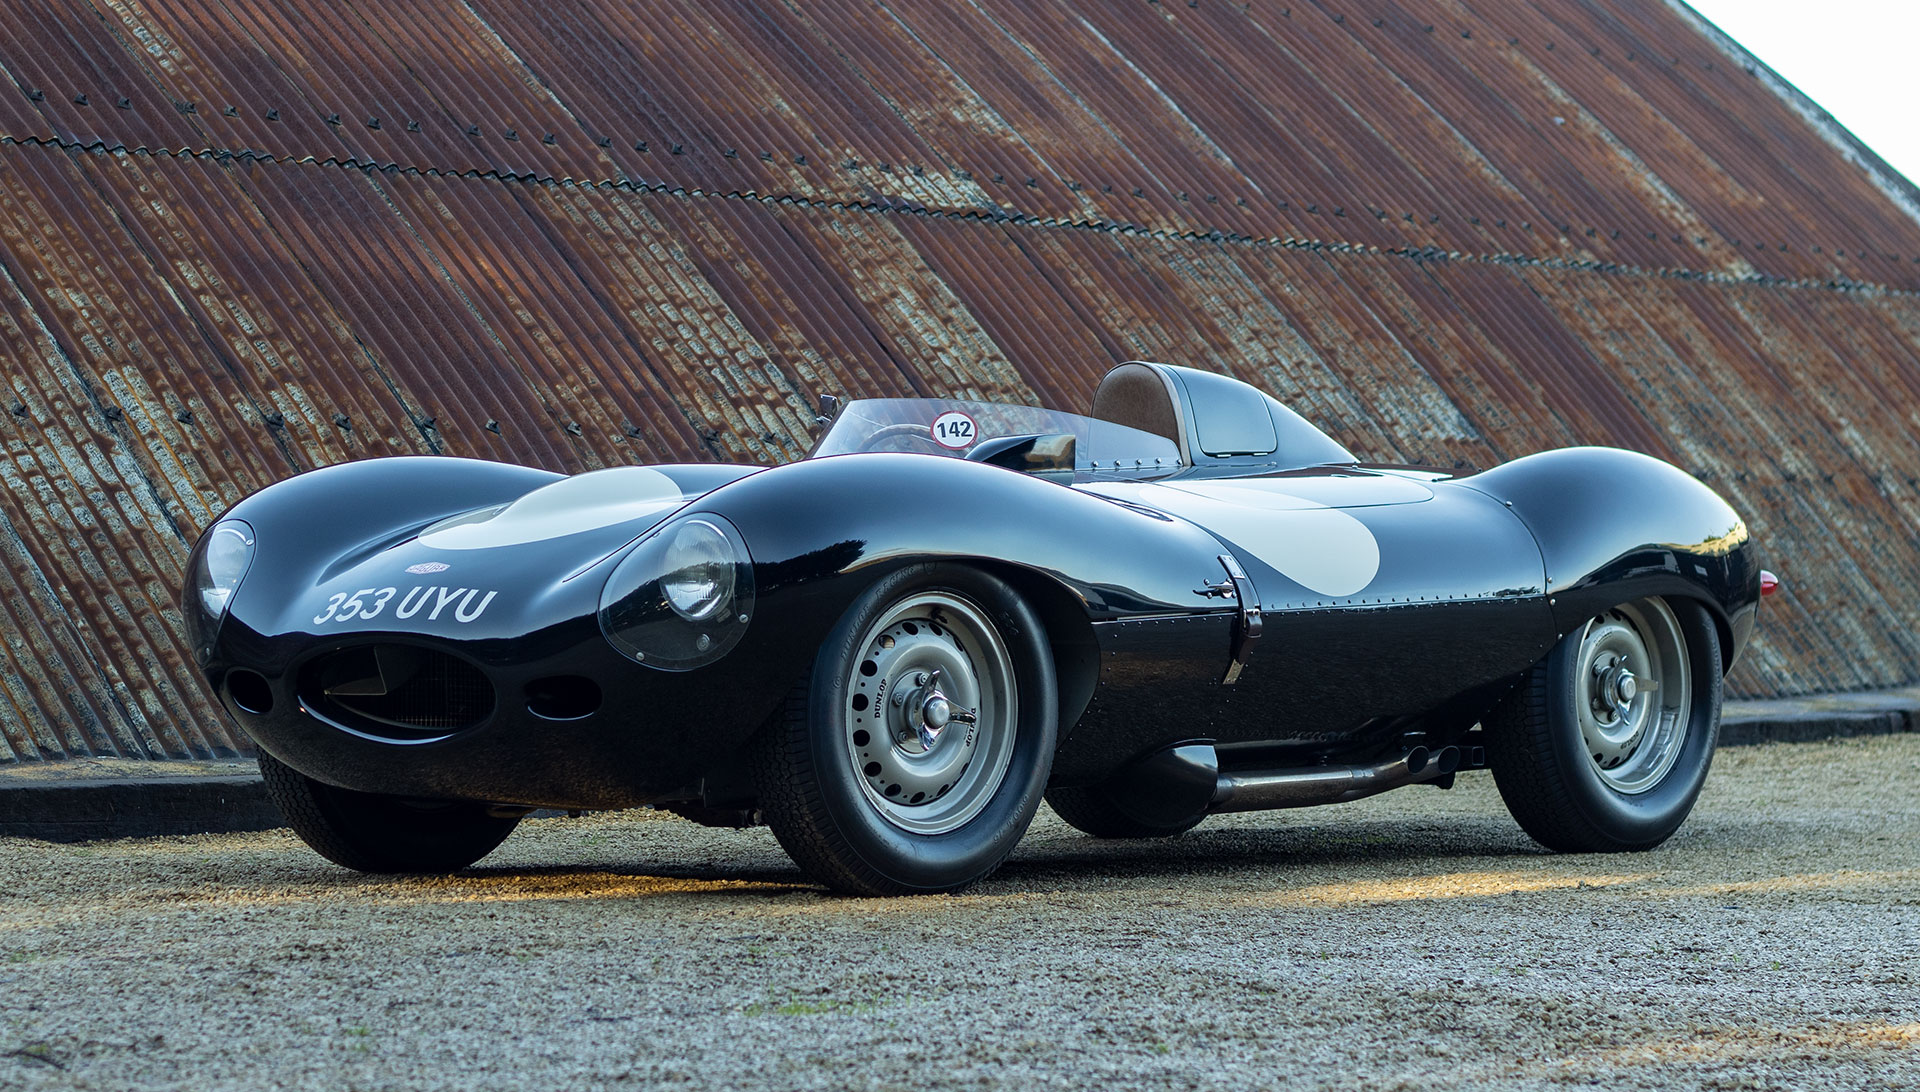 1956 Jaguar D-Type – XKD 526 - for sale at The Classic Motor Hub